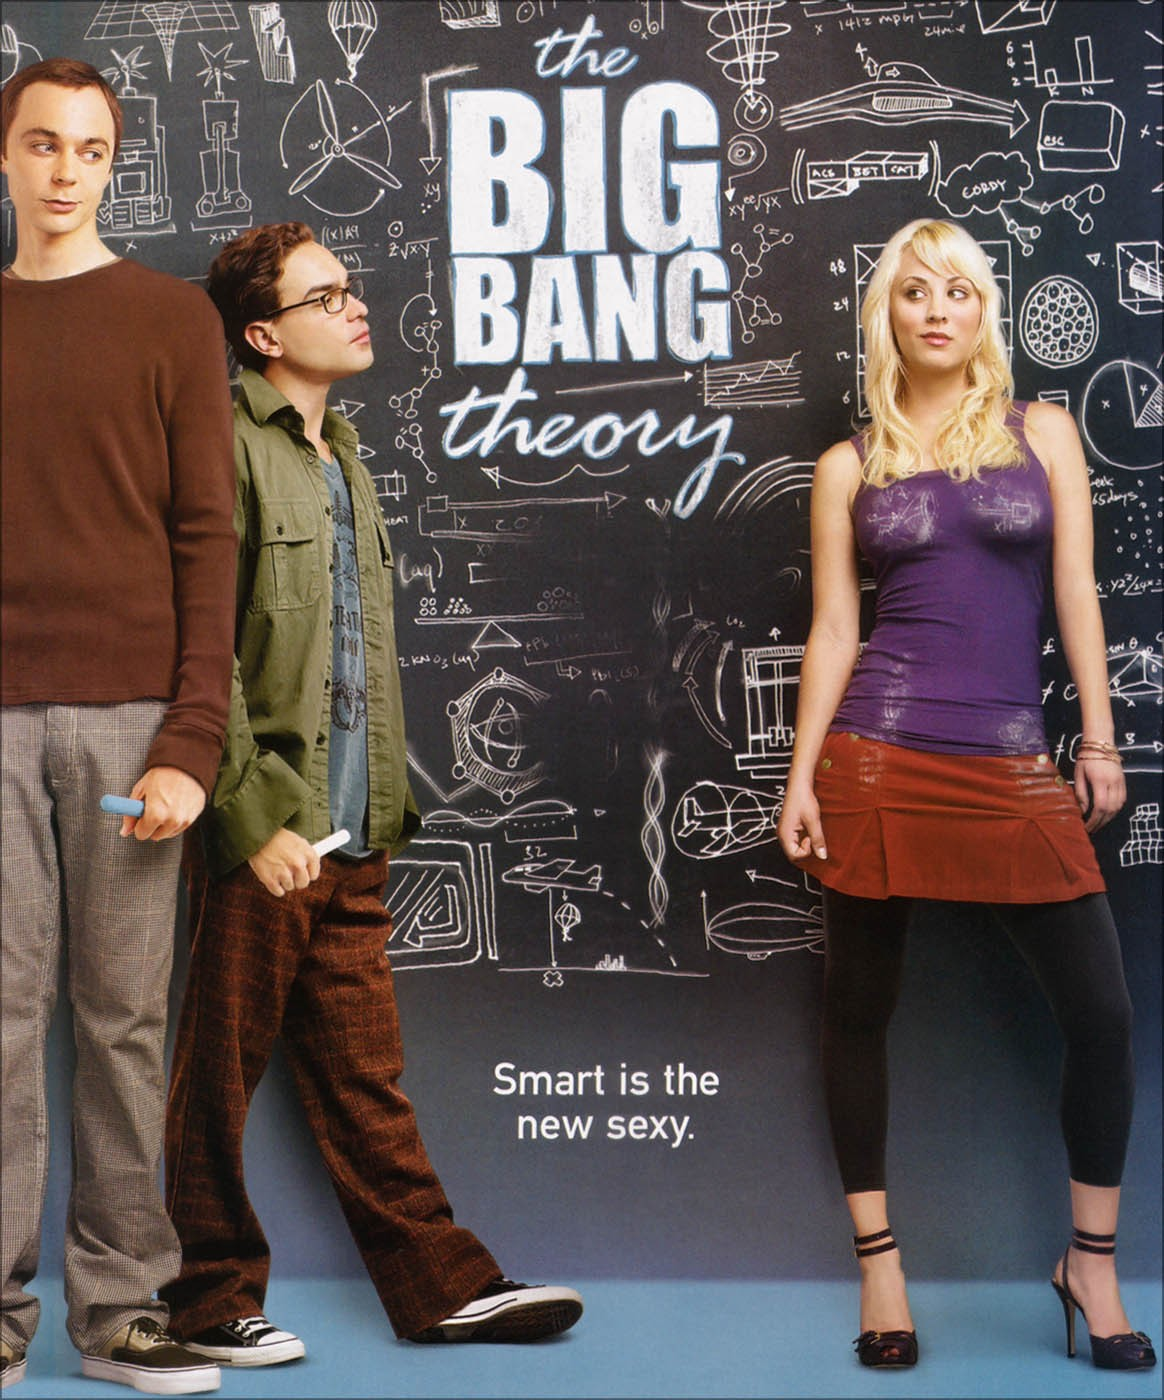 https://lh6.googleusercontent.com/-v88vbfx0B6A/TYNSjJHe8JI/AAAAAAAAABM/Qn-bfFaFmPM/s1600/The+Big+Bang+Theory+%2528Season+1%252C2+and+3%2529+%255BComplete%255D.jpg